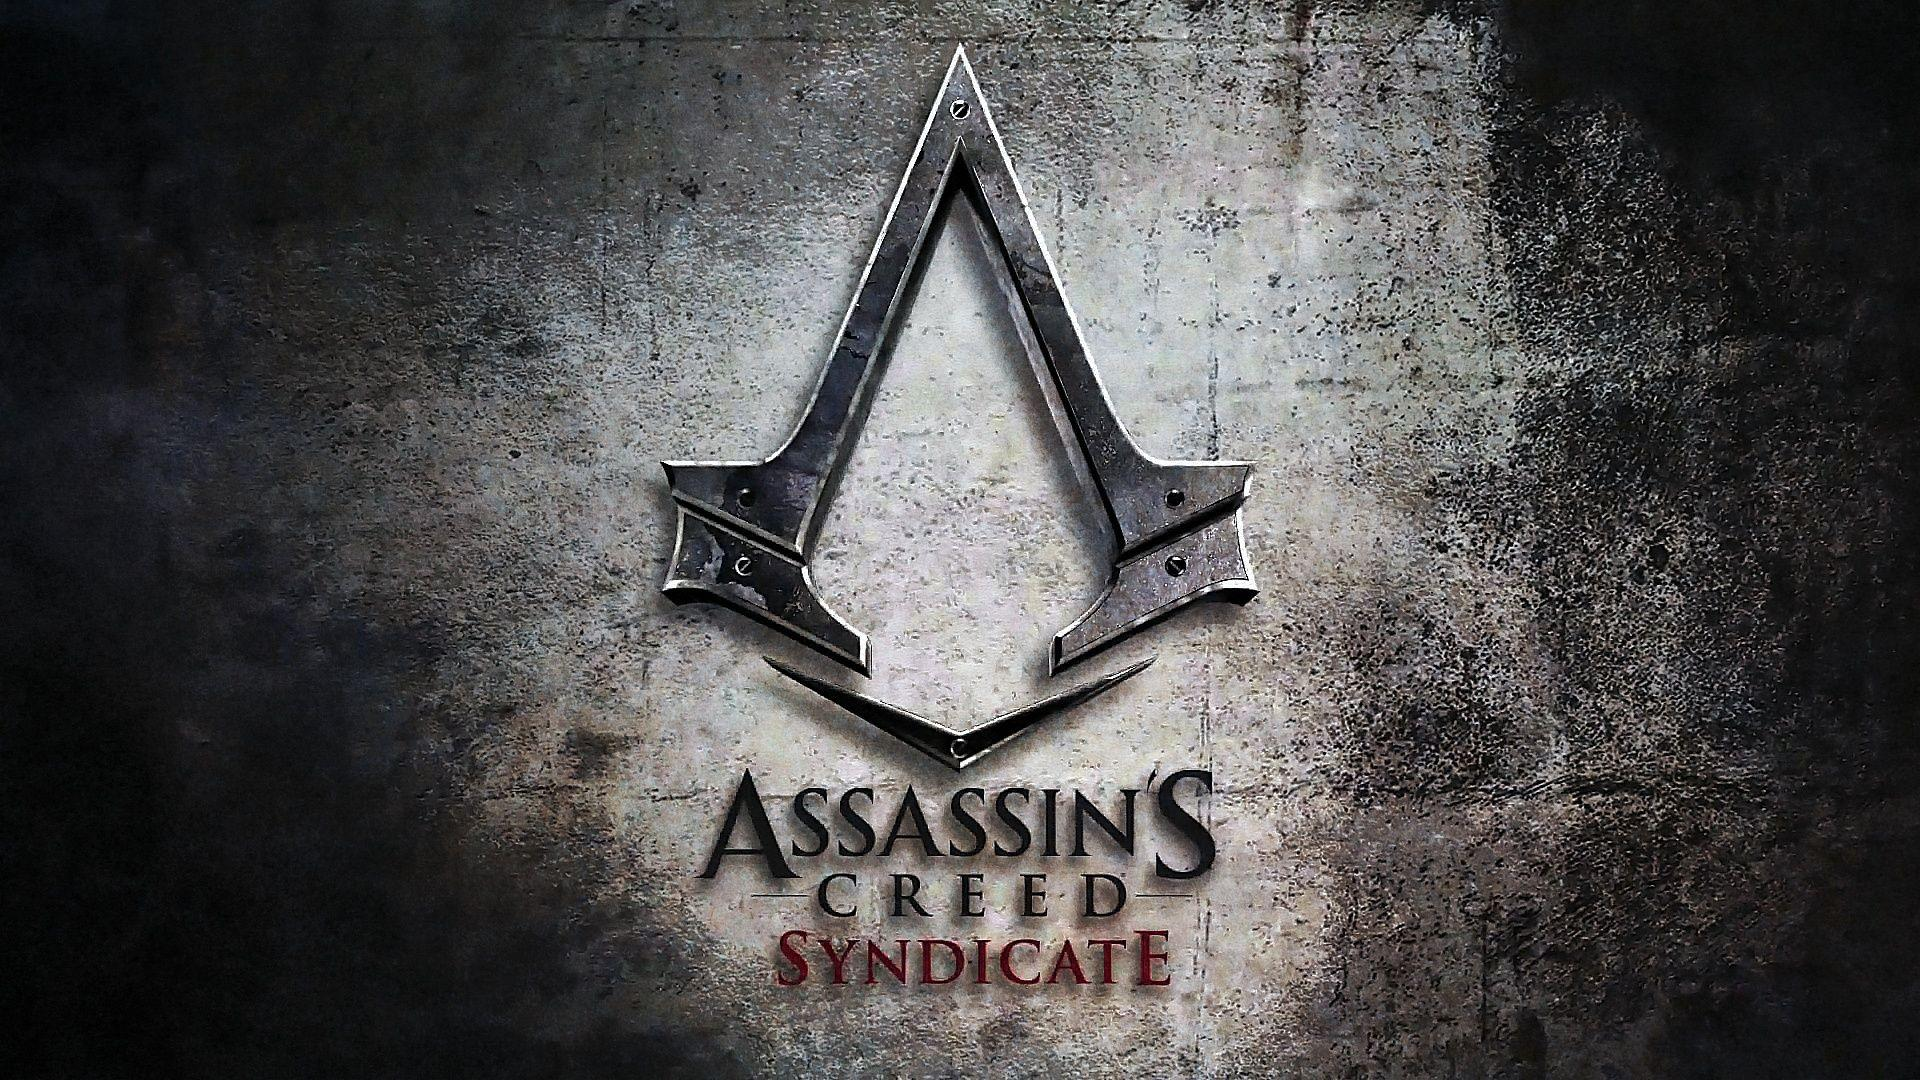 Assassins creed syndicate cool logo wallpapers hd.